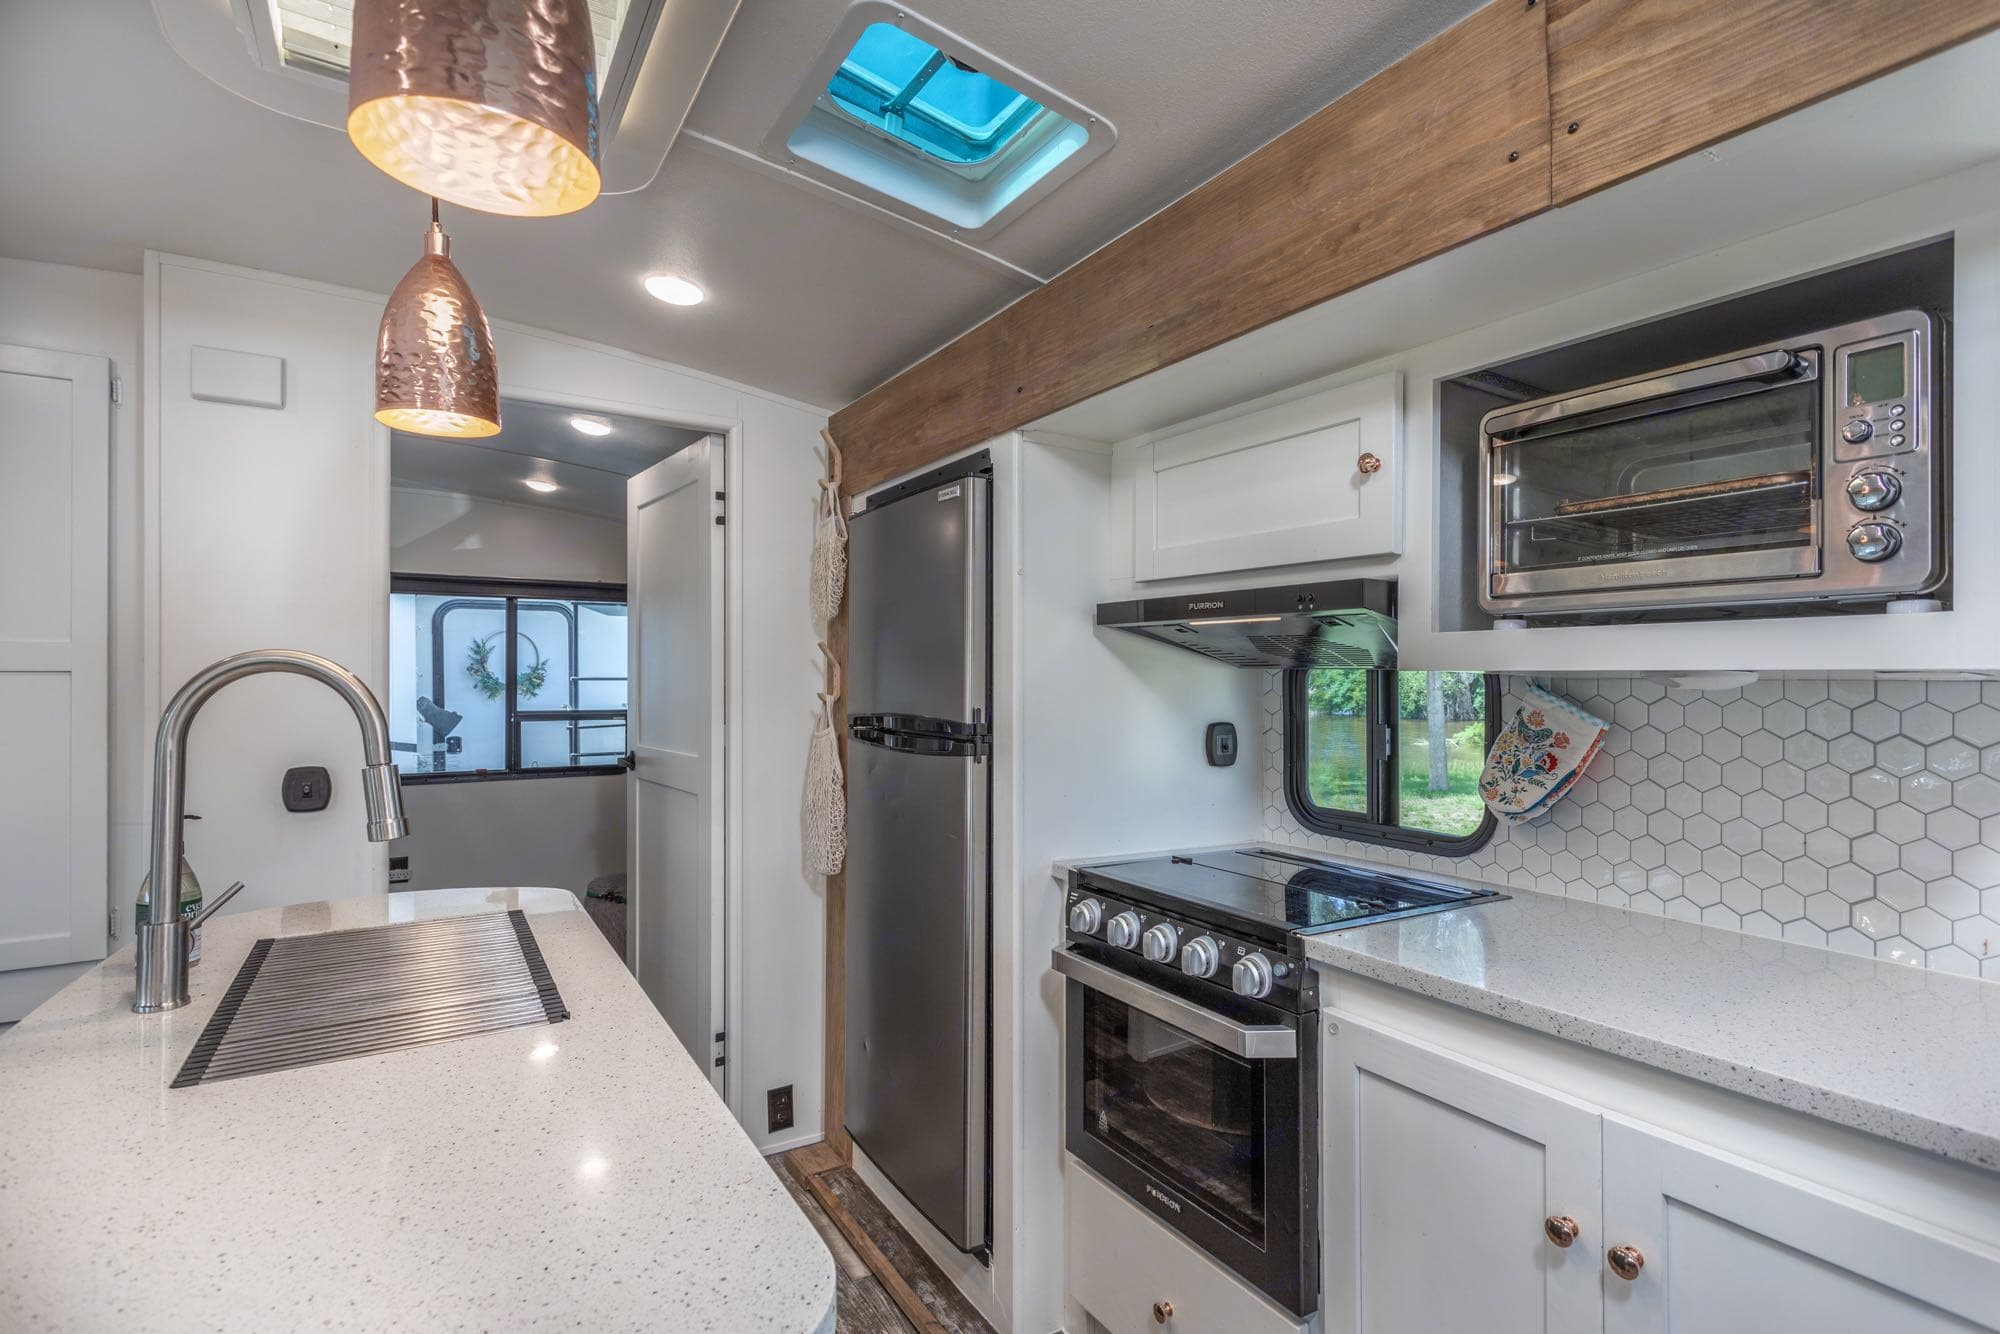 great storage in kitchen complete with all you need to cook meals while away. Pot, Pan, cooking utensils, plates, cups, eating utensils, strainer, griddle, instant pot, rags, coffee pot, oven mitts. Keystone Outback 2019